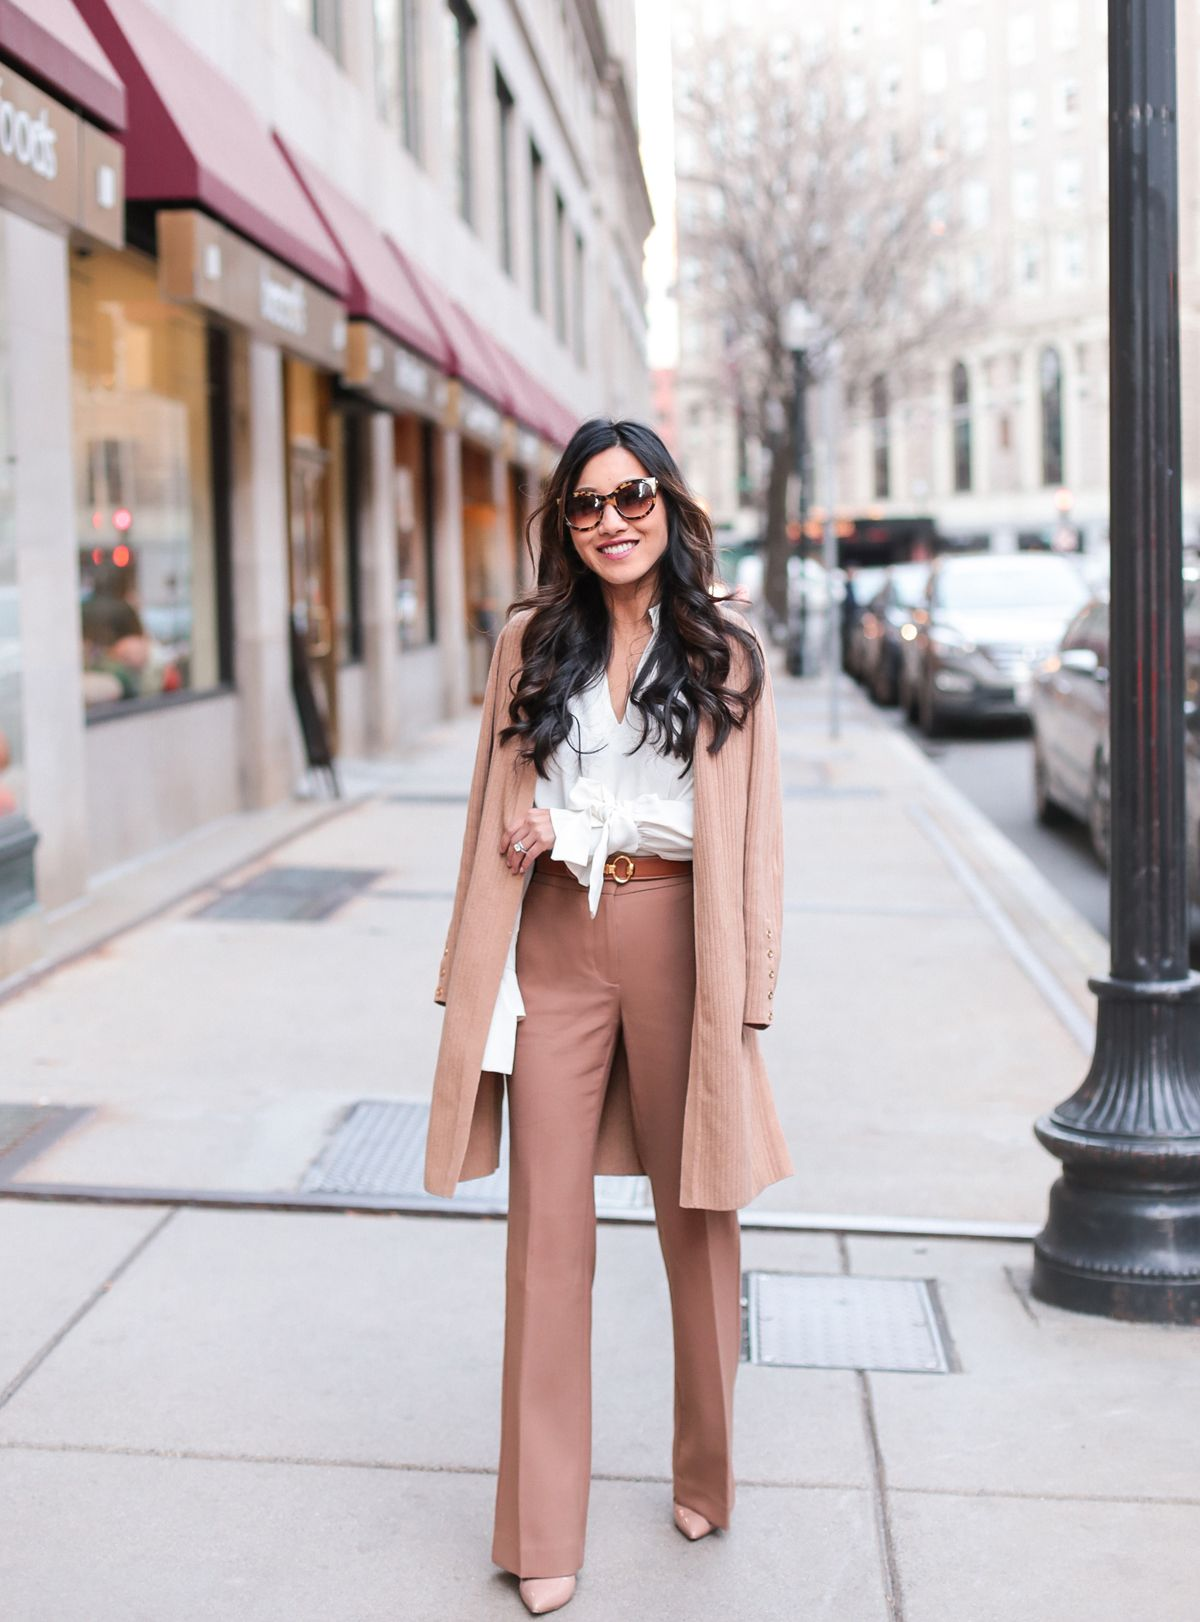 afc5a527c1e How to style a long duster cardigan    winter office style outfit ideas by  Extra Petite blog